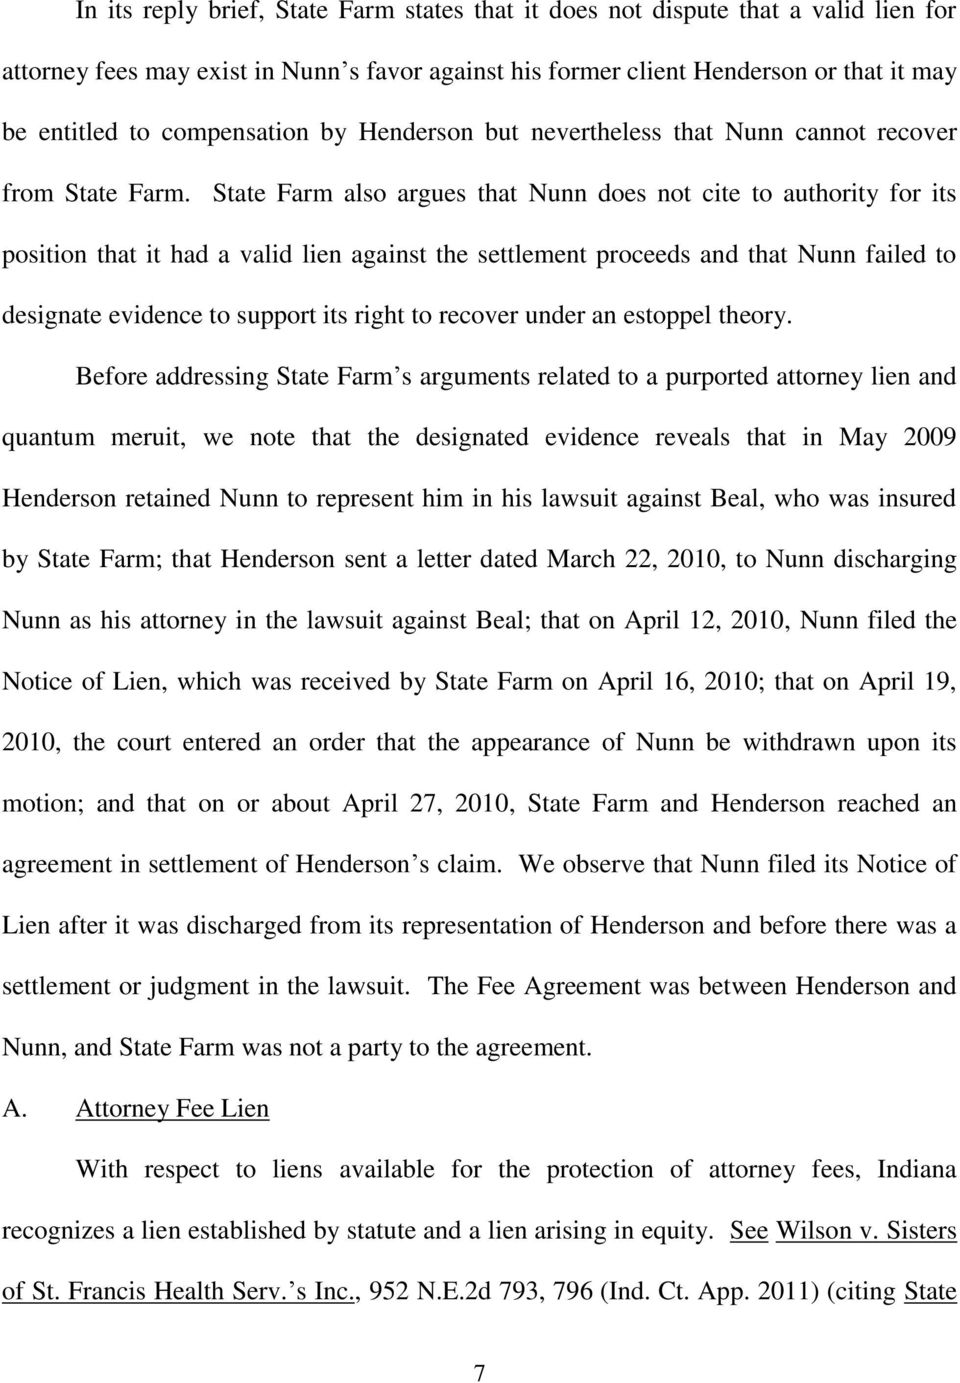 State Farm also argues that Nunn does not cite to authority for its position that it had a valid lien against the settlement proceeds and that Nunn failed to designate evidence to support its right